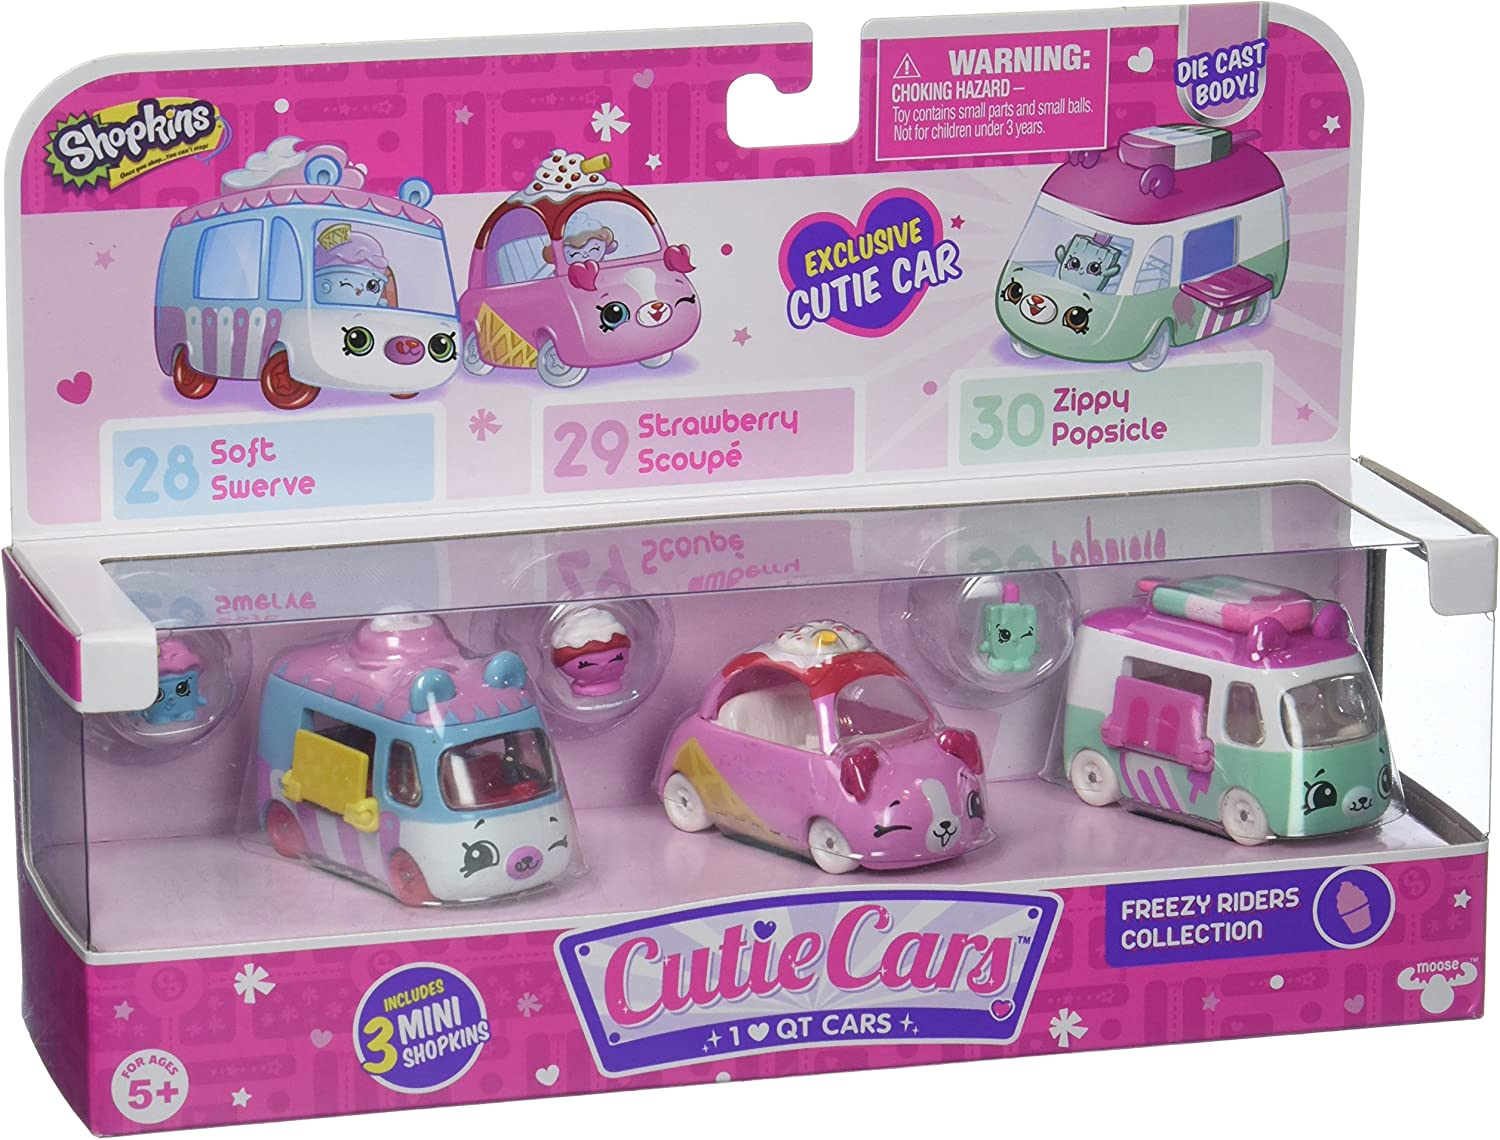 Top 12 Best Shopkins Toys (2020 Reviews & Buying Guide) 8